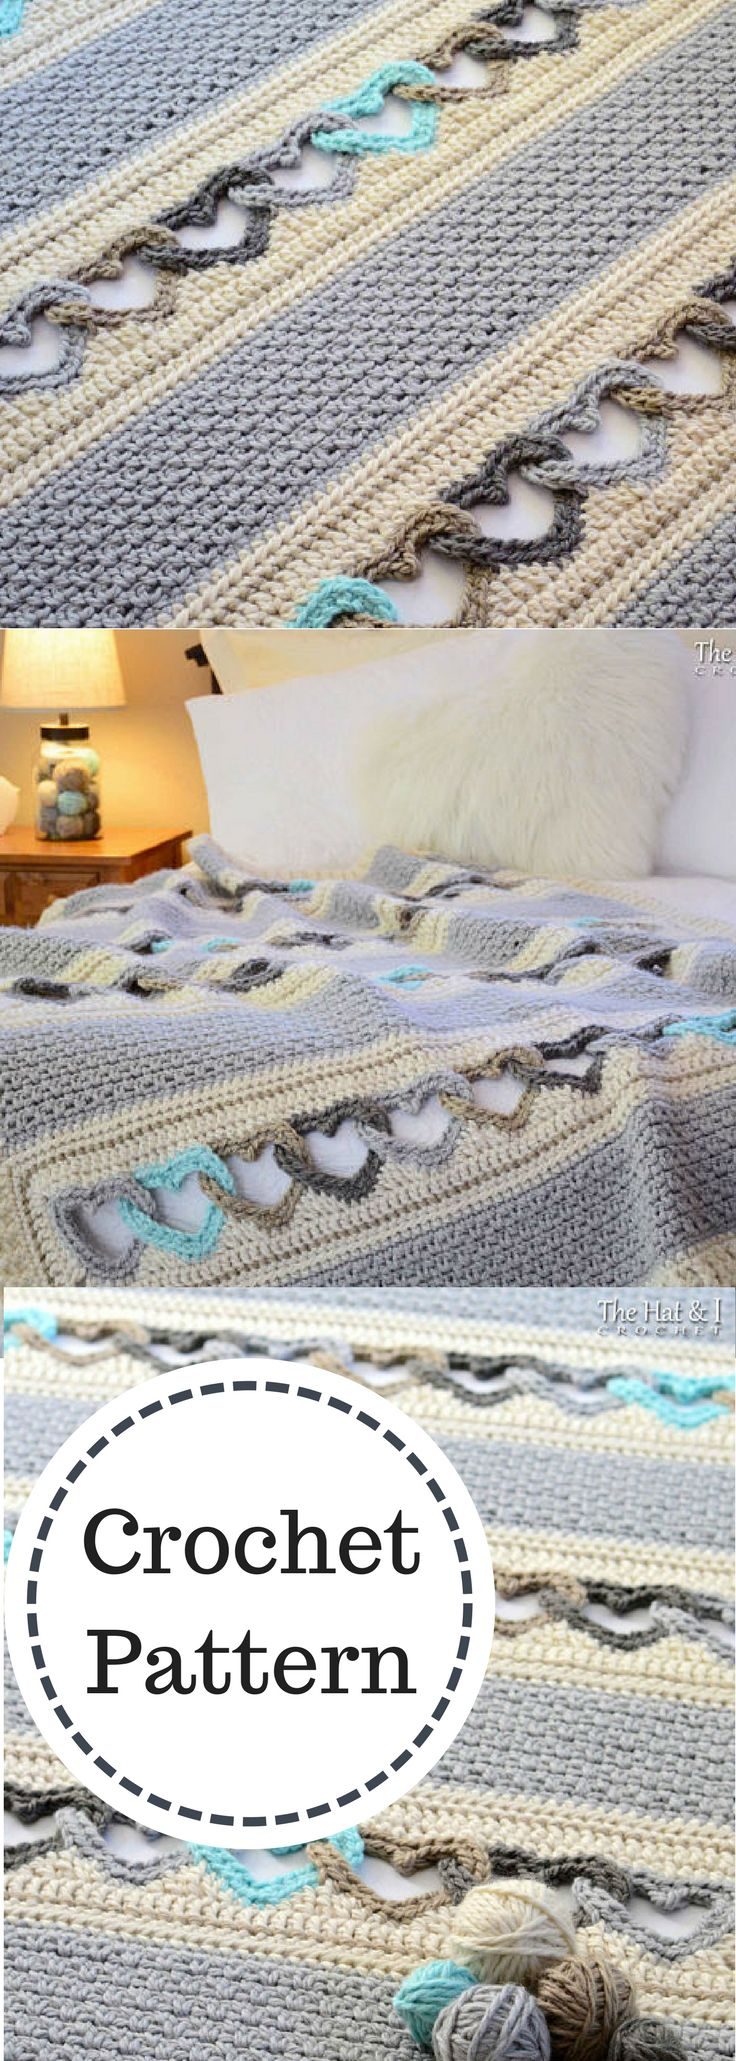 CROCHET PATTERN - With All My Heart - crochet blanket pattern, heart afghan pattern, linked hearts blanket pattern - Instant PDF Download #ad